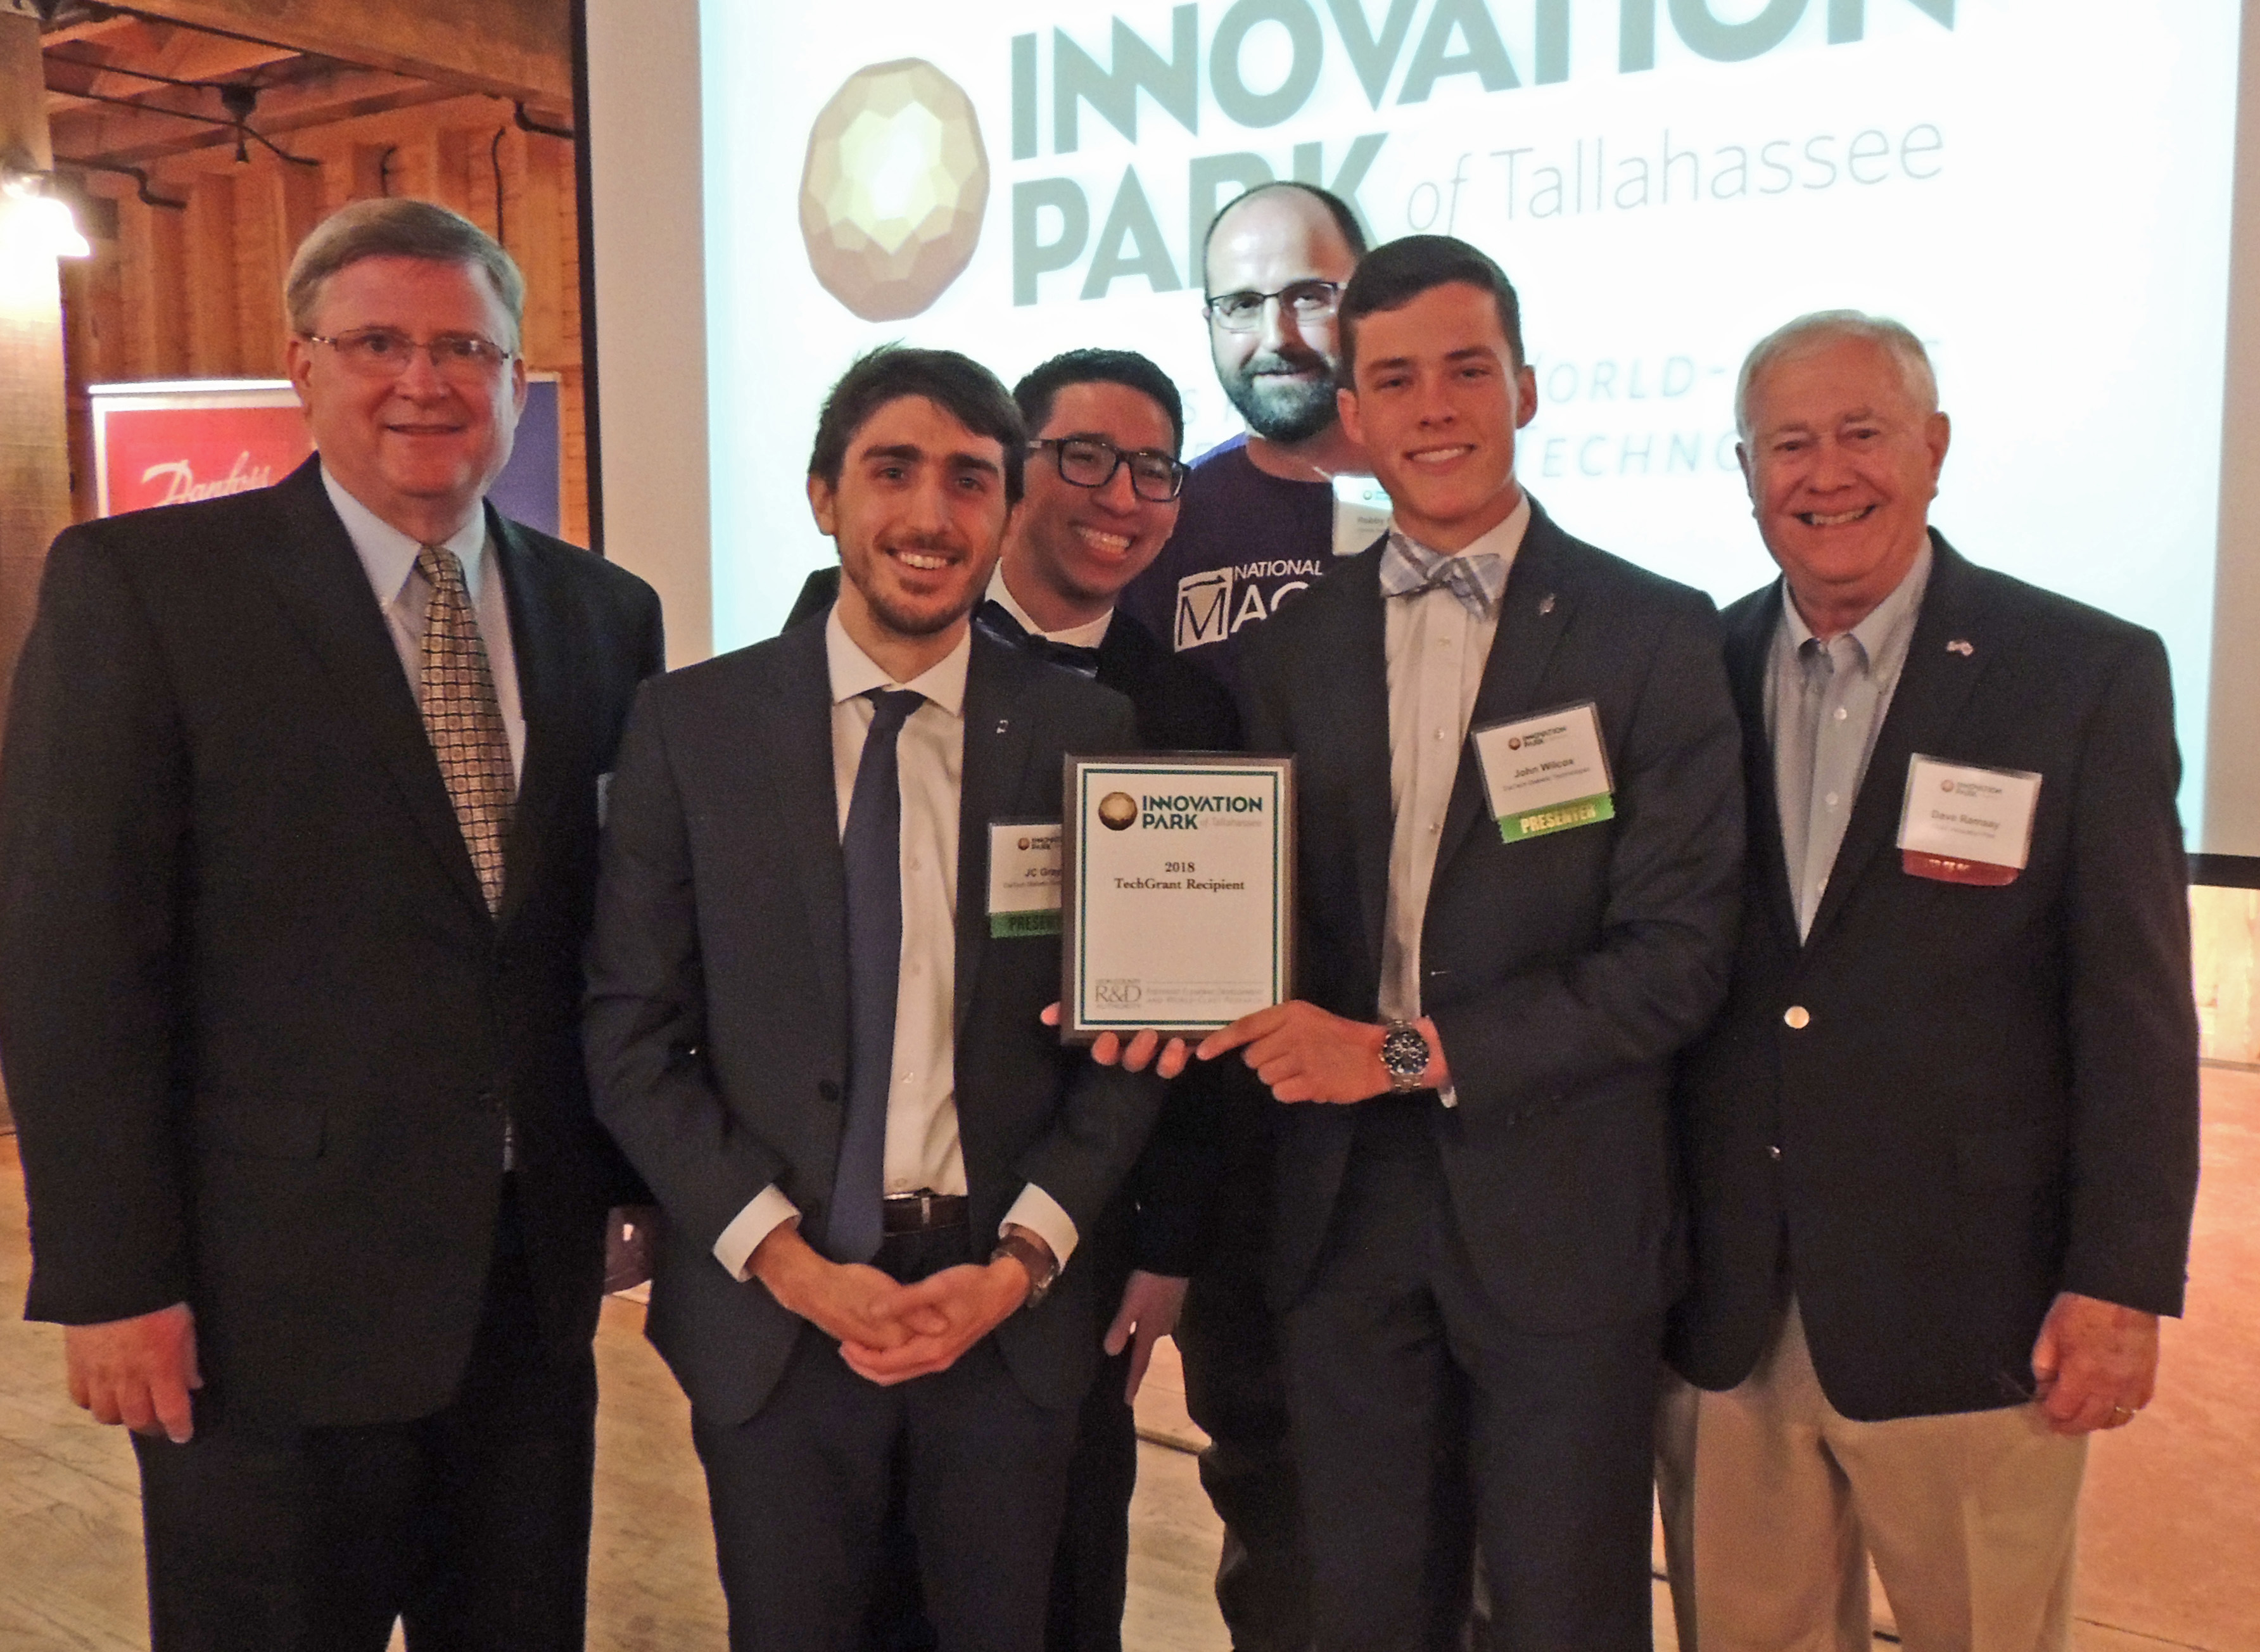 Diatech Diabetic Technologies Inc. was the winner of the 2018 Innovation Park TechGrant